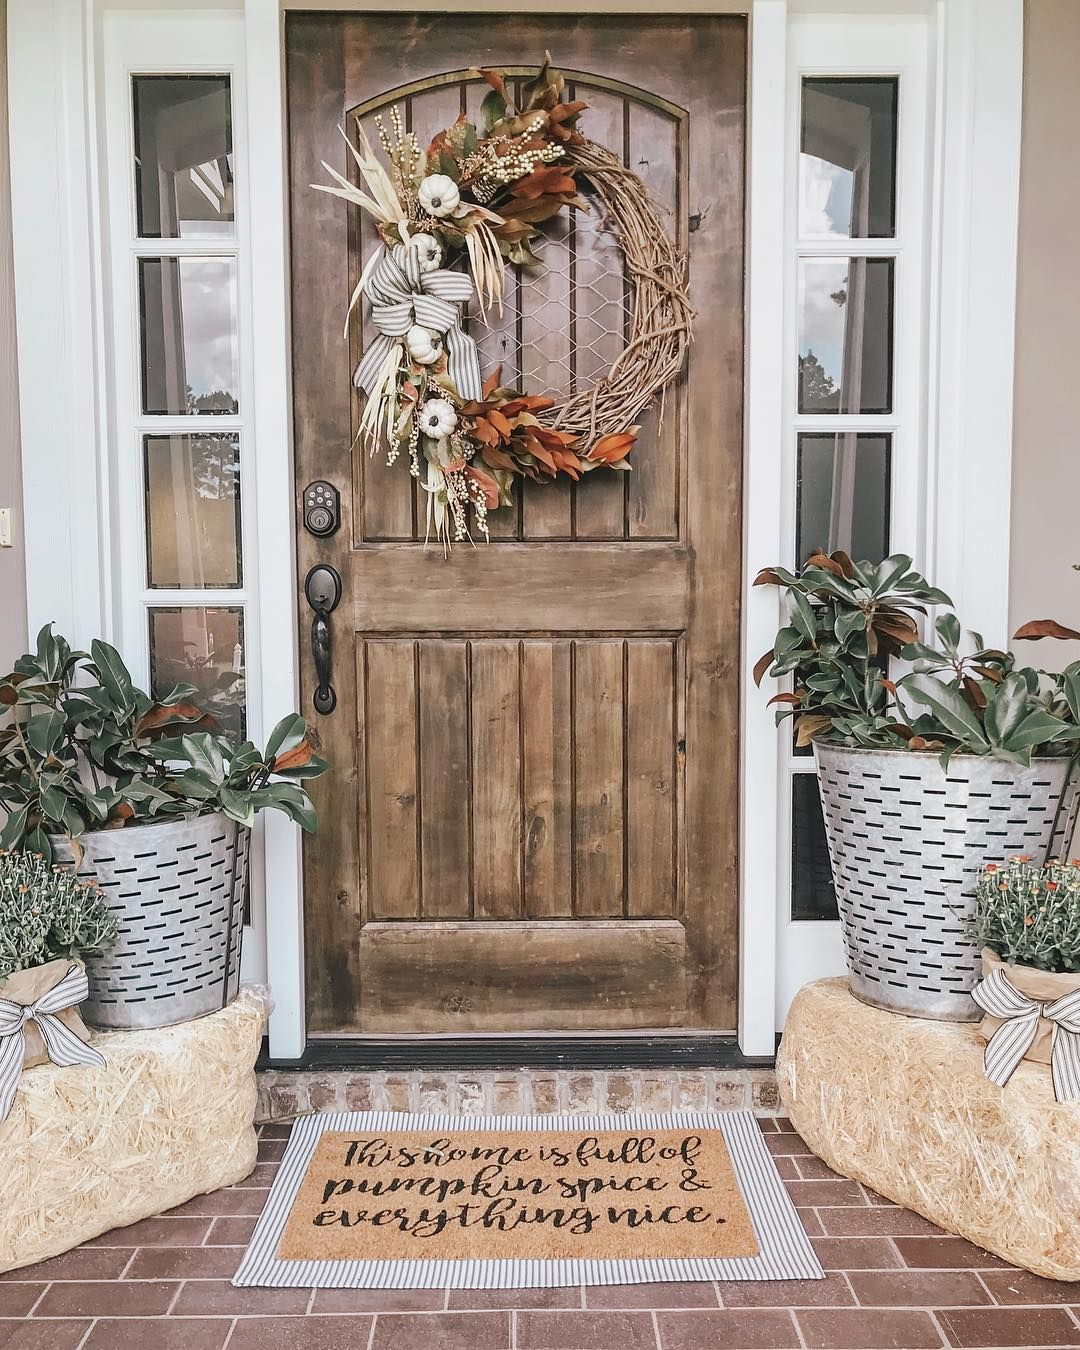 14 of the Most Beautiful Blogger Ideas for a Fall Front Porch #fallfrontporchdecor